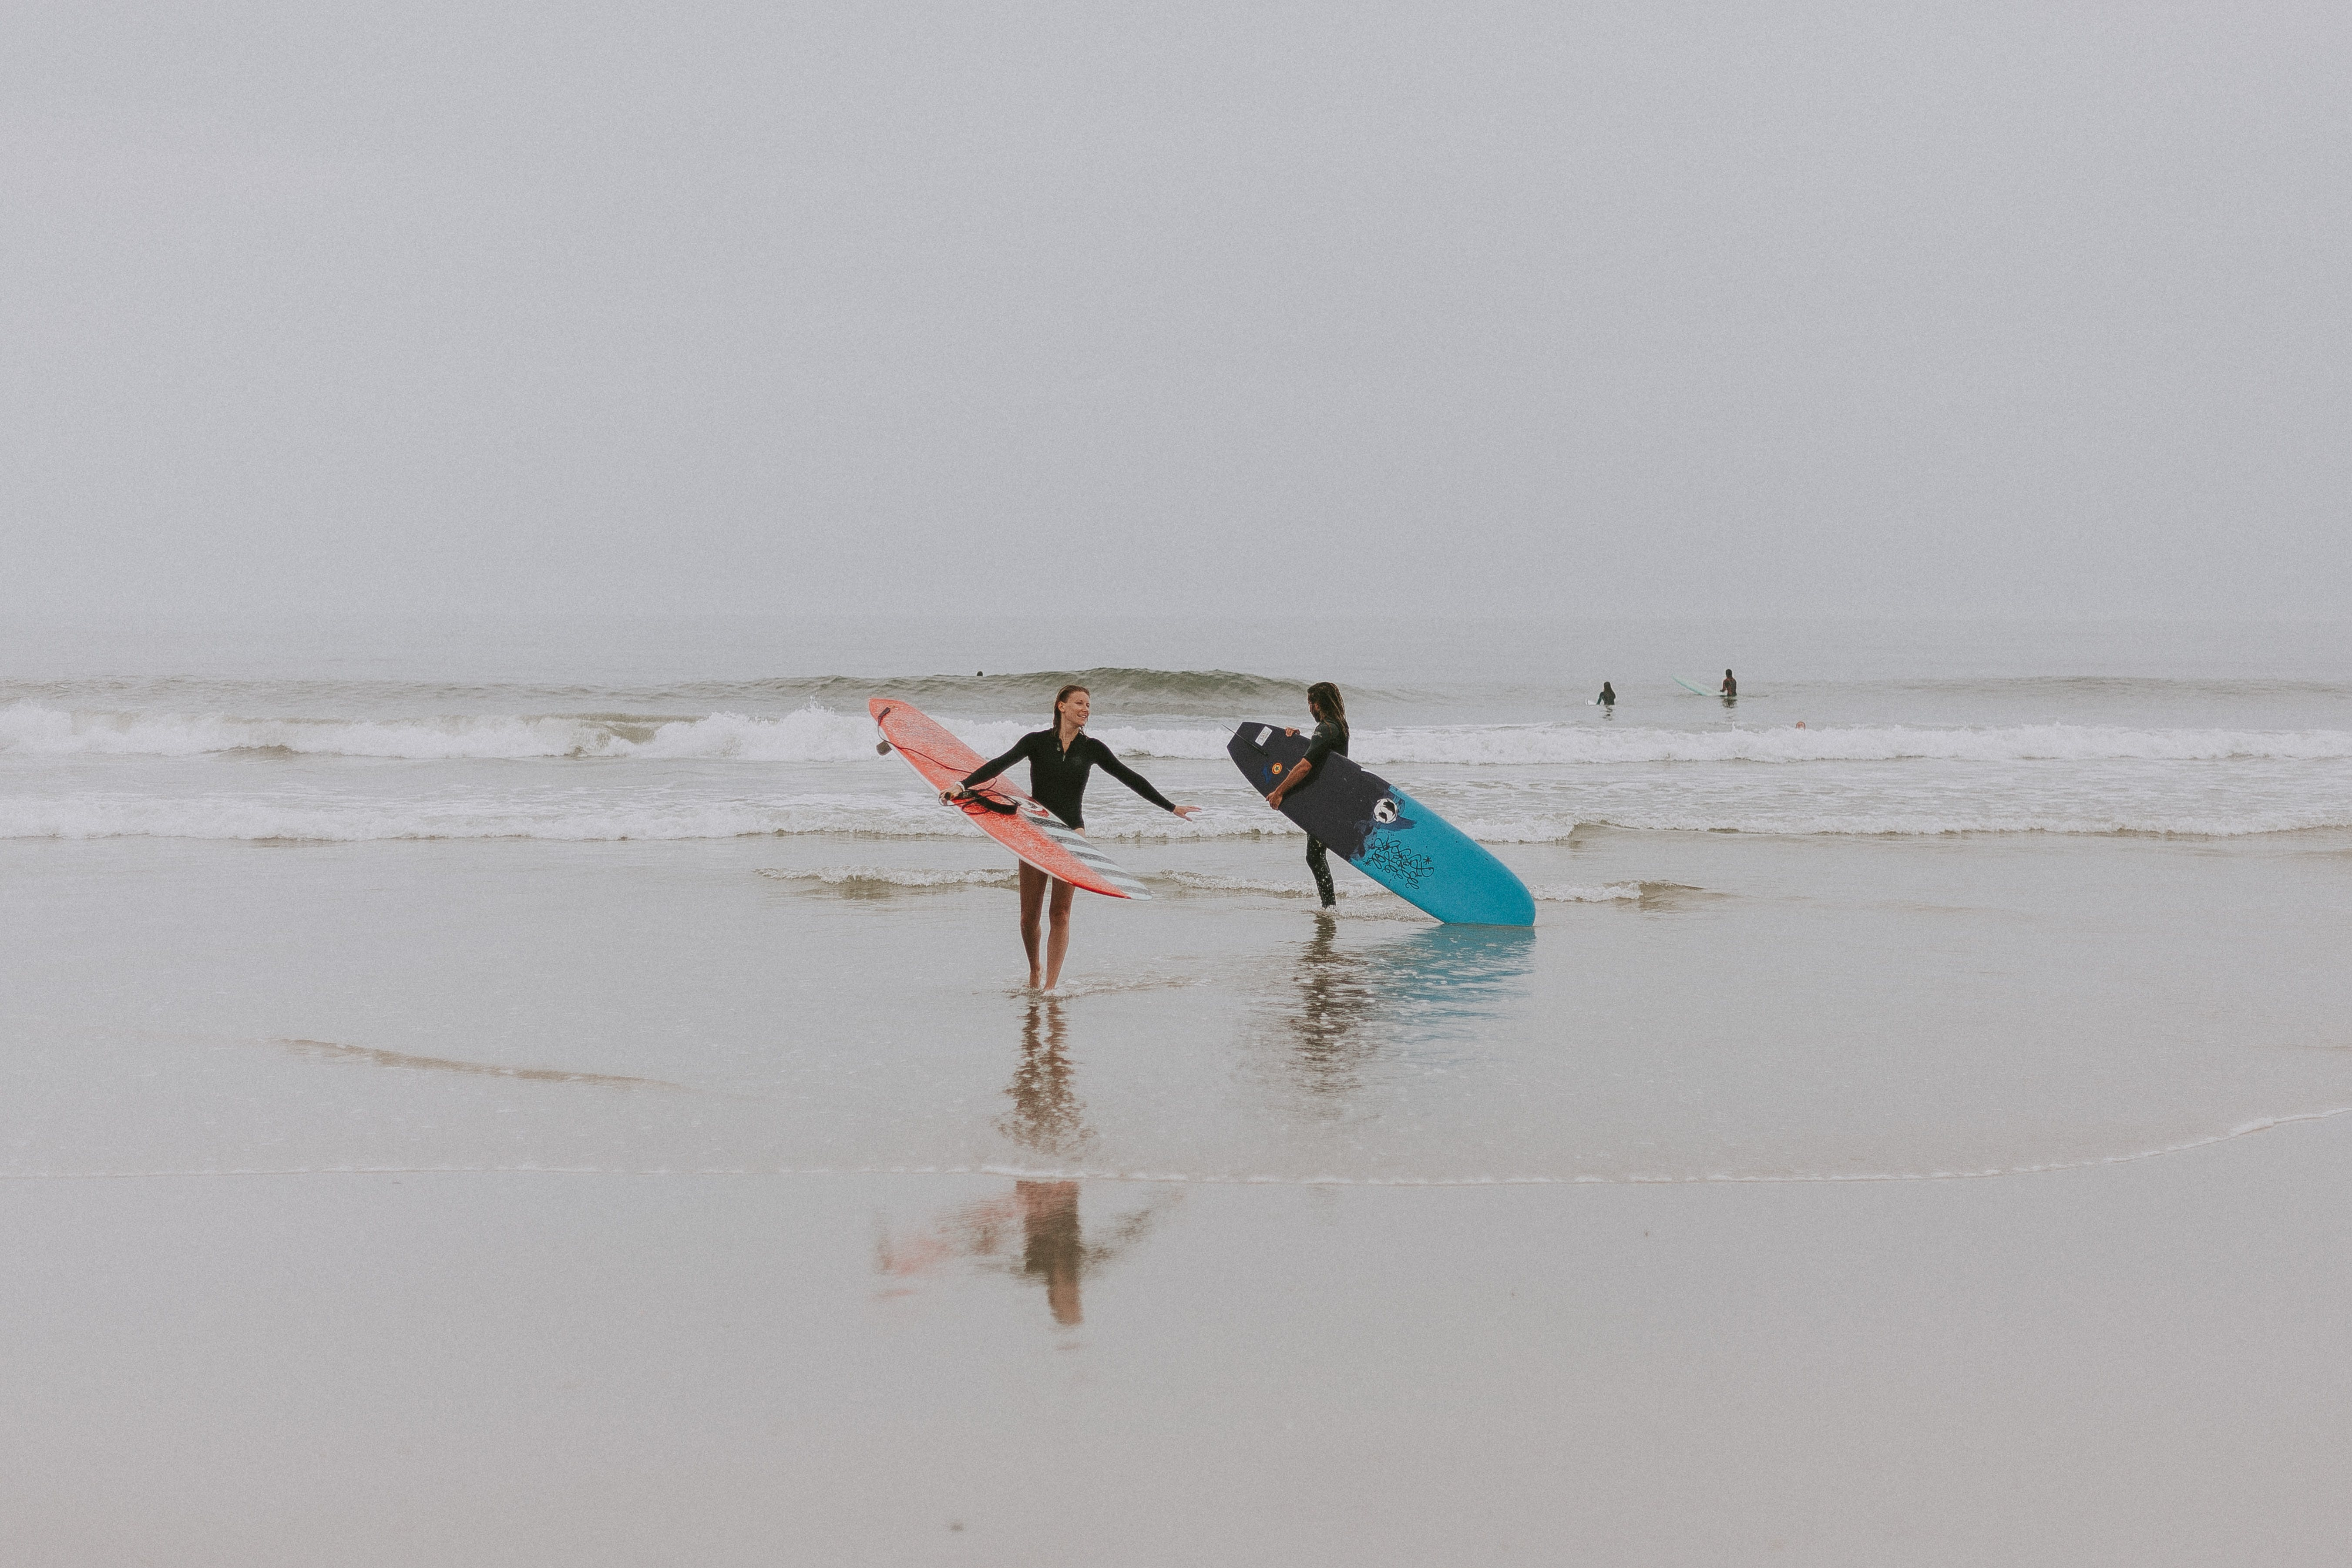 Photography of People On Seashore Holding Surboard